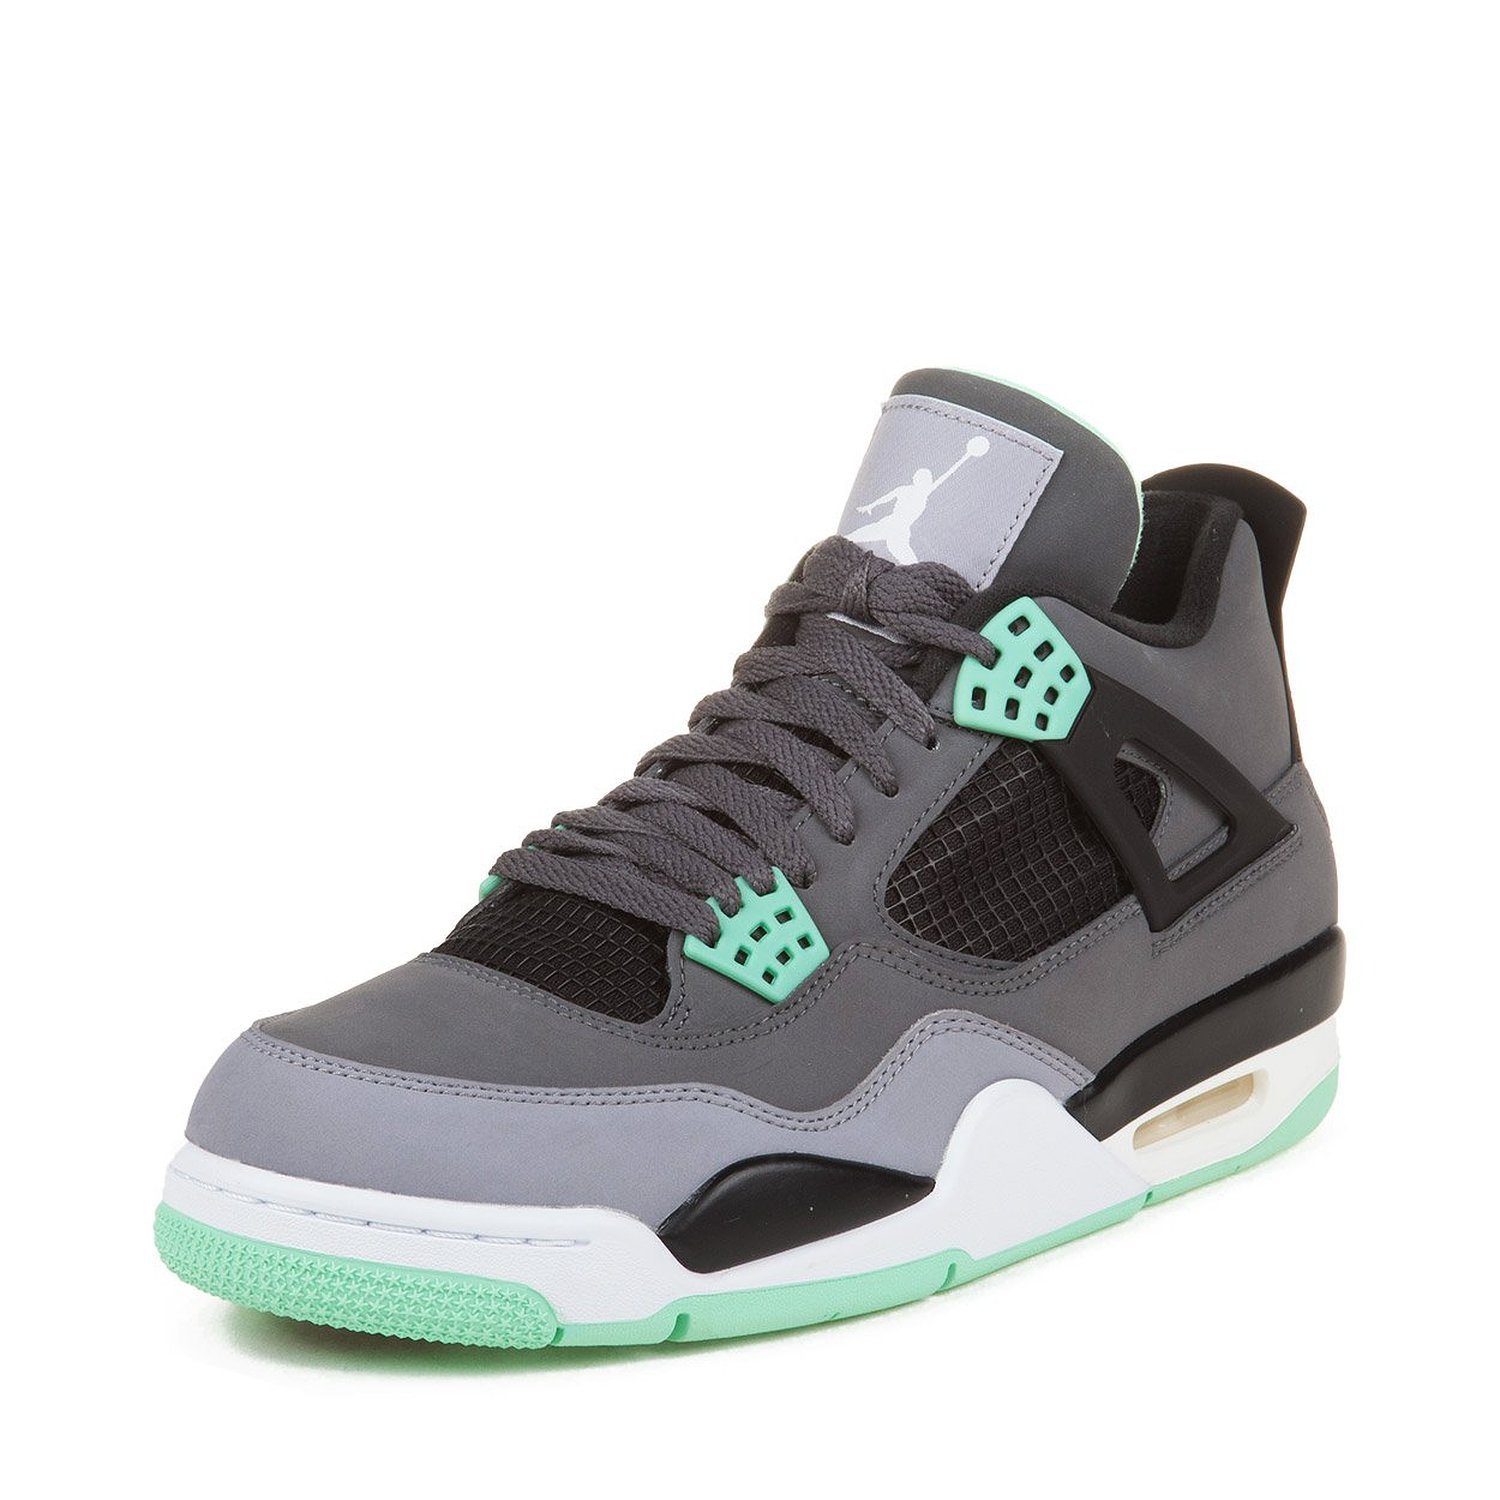 Nike Mens Air Jordan 4 Retro Dark Grey/Green Glow-Cement Grey Leather Basketball Shoes Size 14